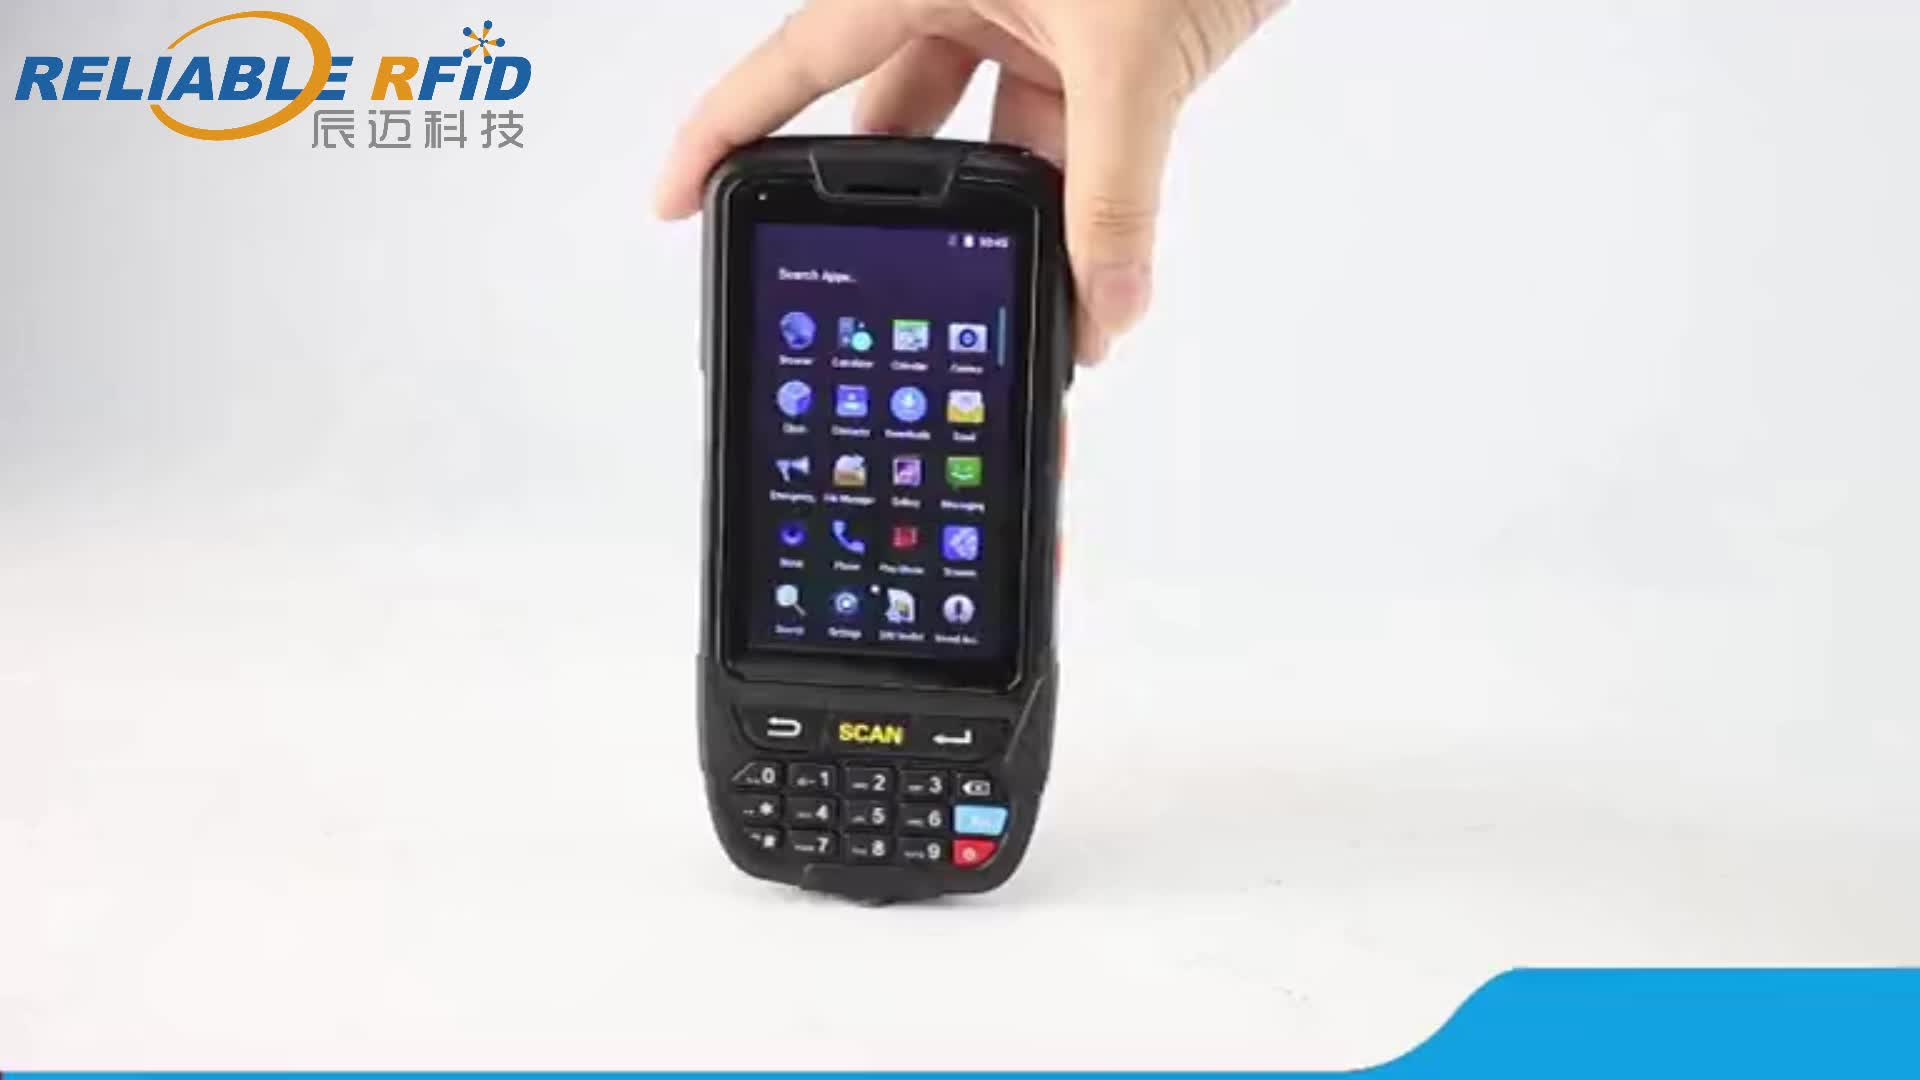 Reliablerfid  Cheap Android 8.1 4G WiFi Bluetooth GPS NFC Handheld Terminal 1D Barcode Scanner PDAs